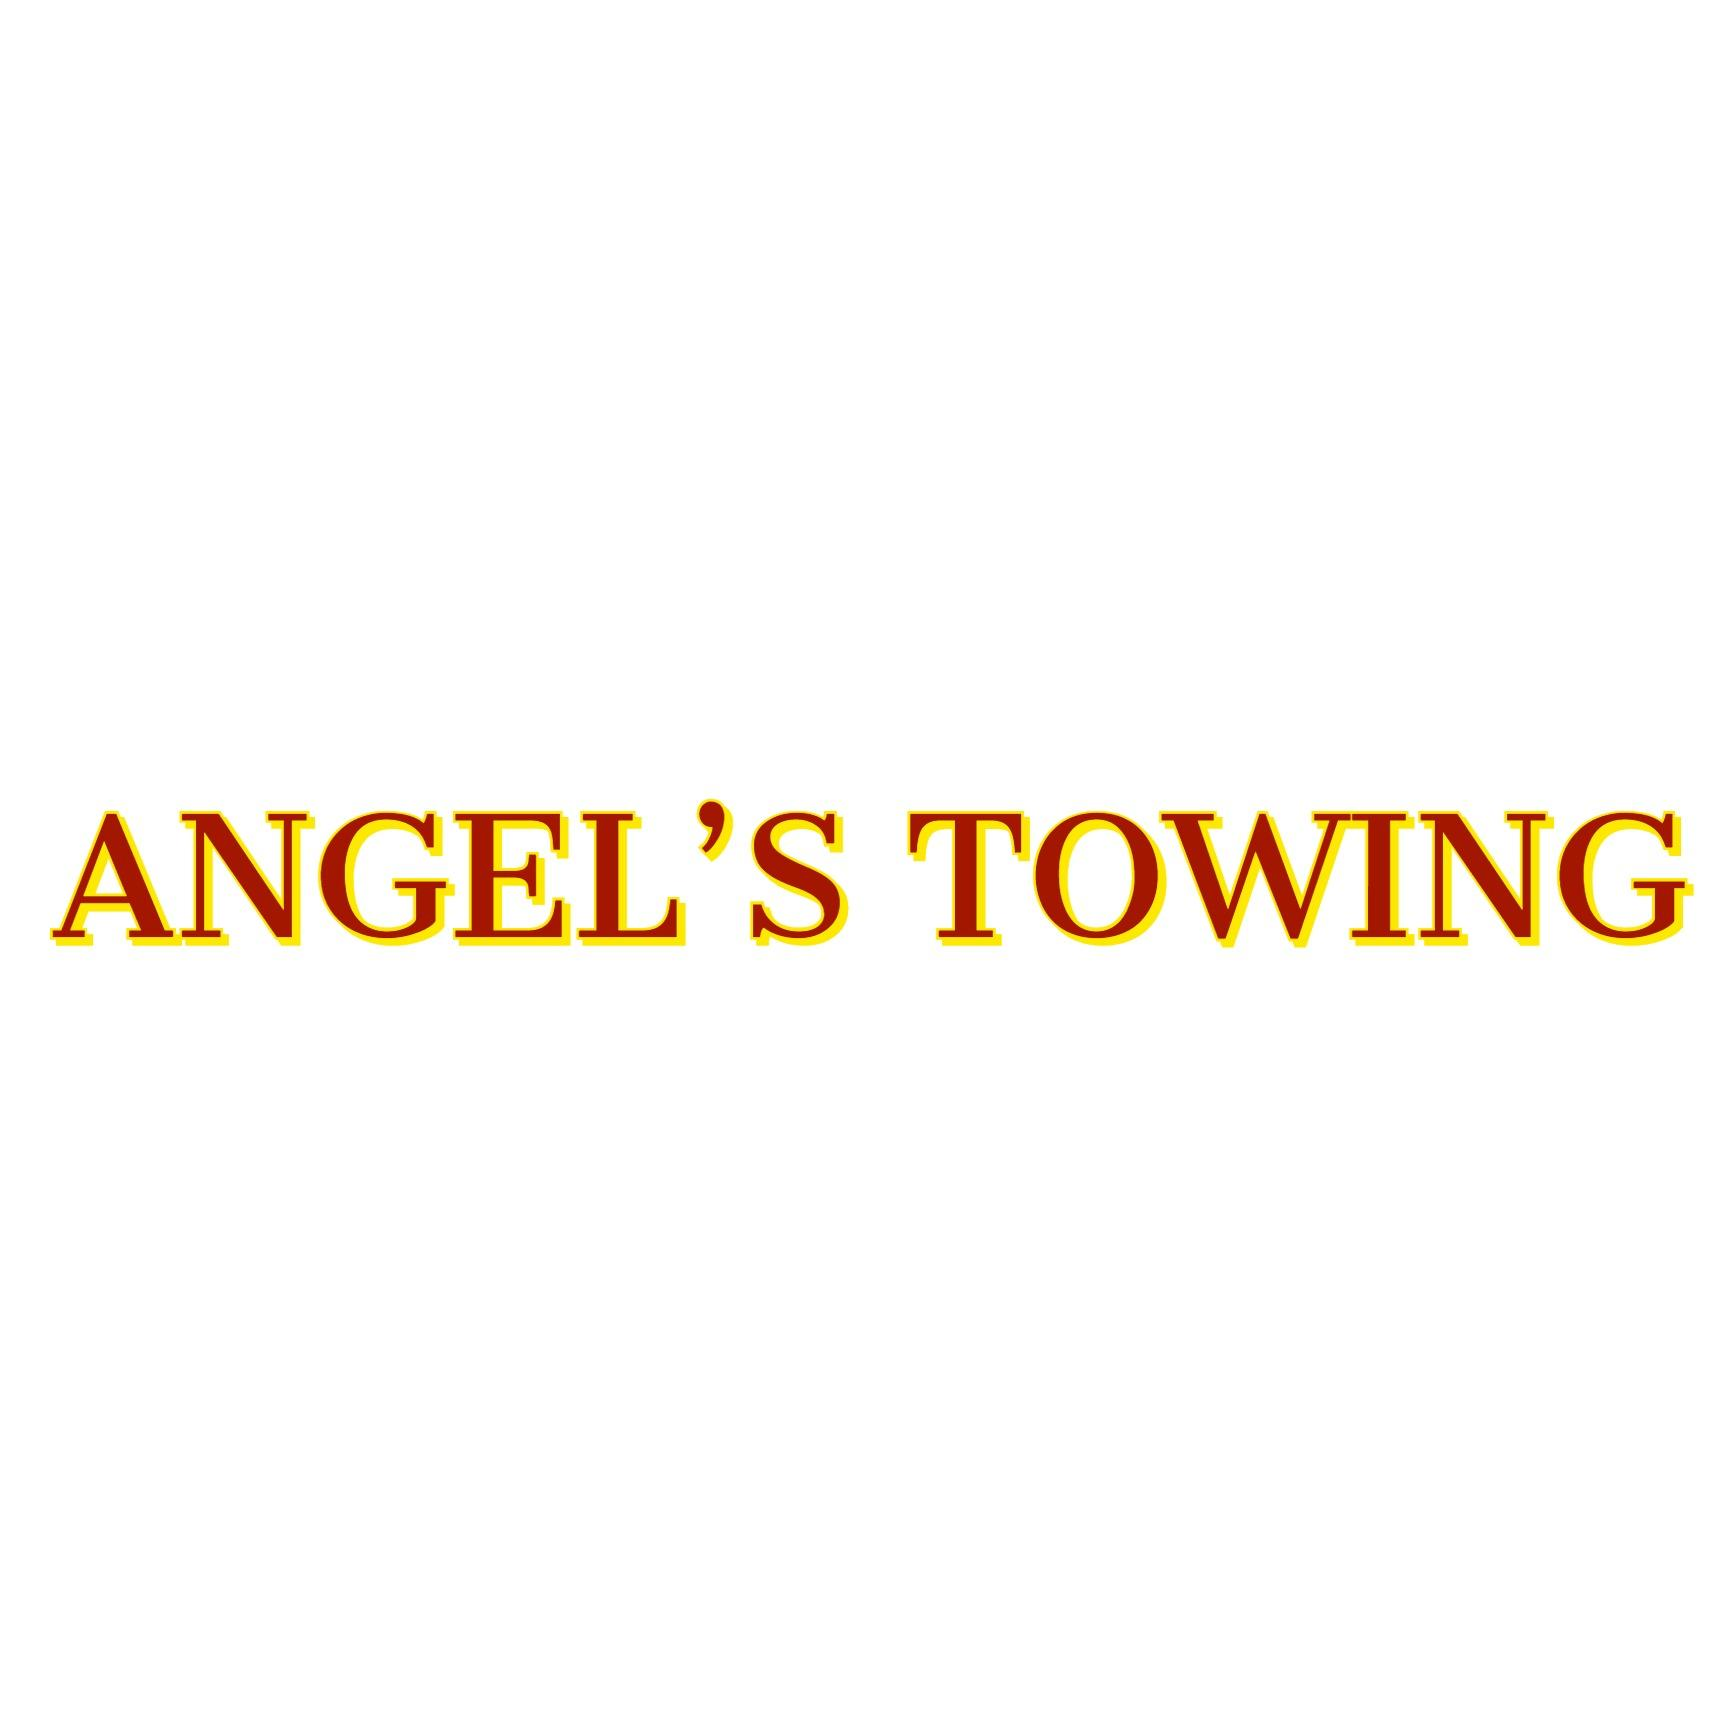 Angel's Towing image 3